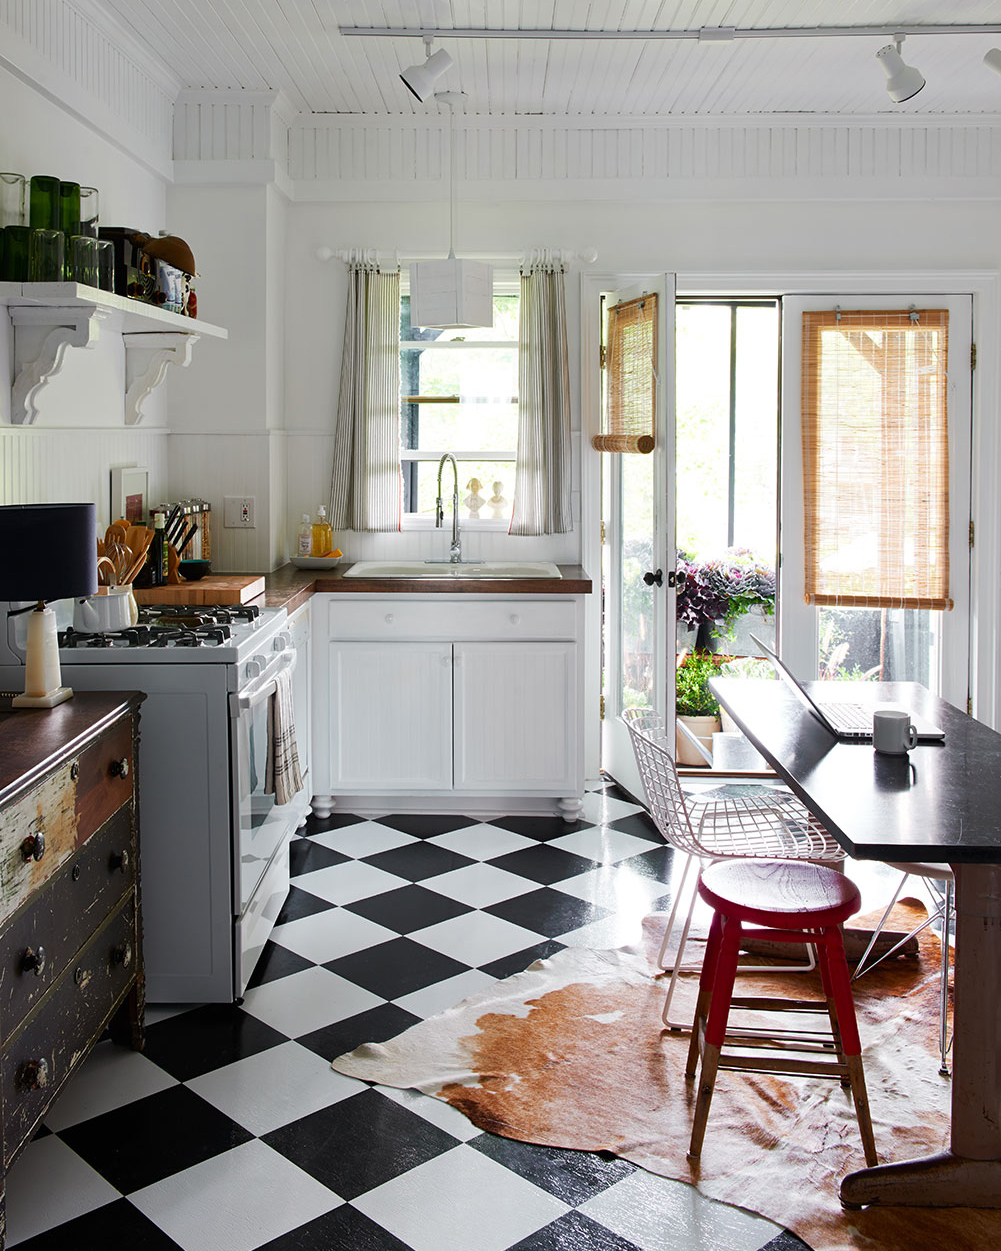 The laid-back kitchen melds country style with standout modern design pieces.